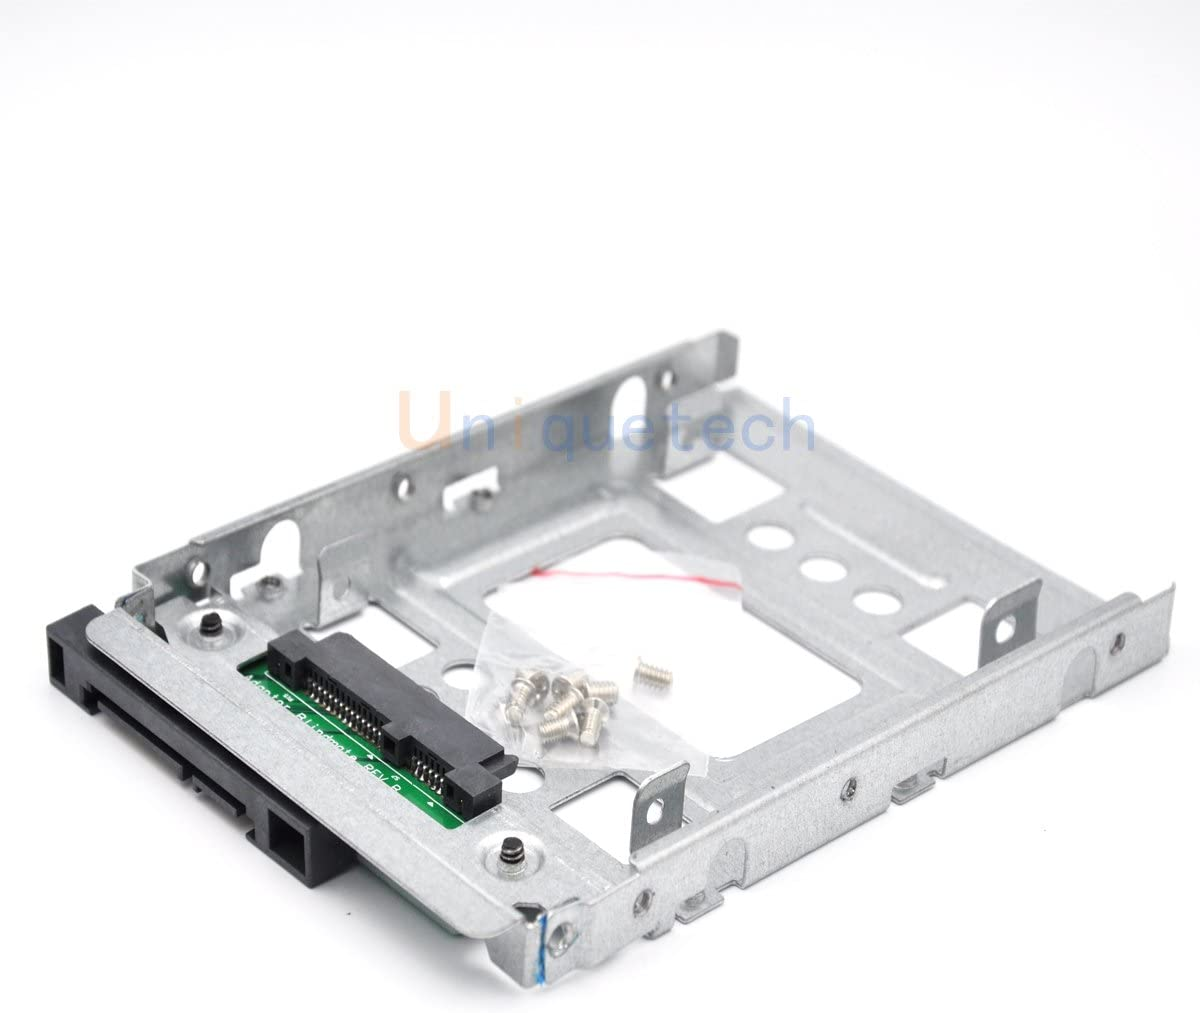 "654540-001 SAS/SATA/SSD 2.5"" to 3.5"" Drive Adapter FOR hp 651314-001/373211-001 DELL F238F/KG1CH hdd tray"